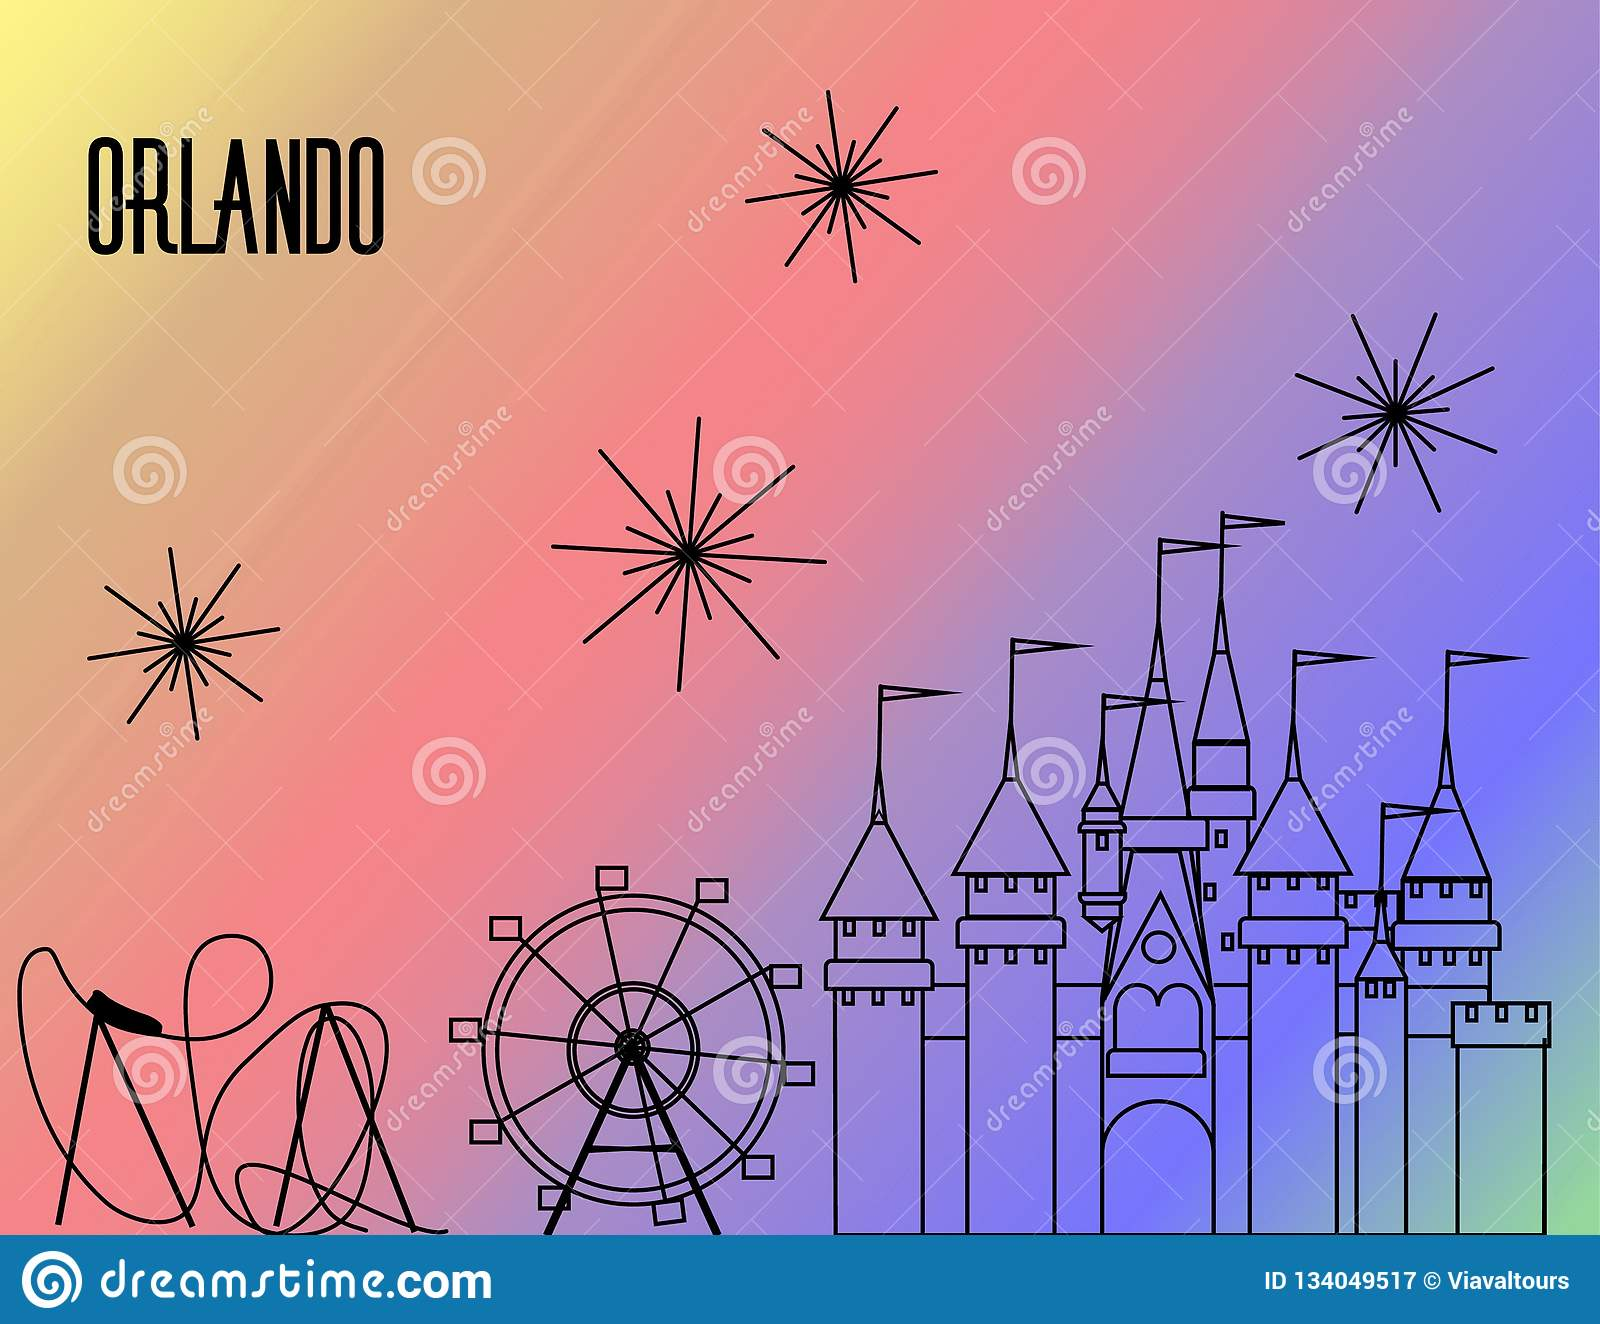 Orlando Atractions black line on rainbow colorful background. Roller Coaster, Big Wheel, Castle and fireworks.